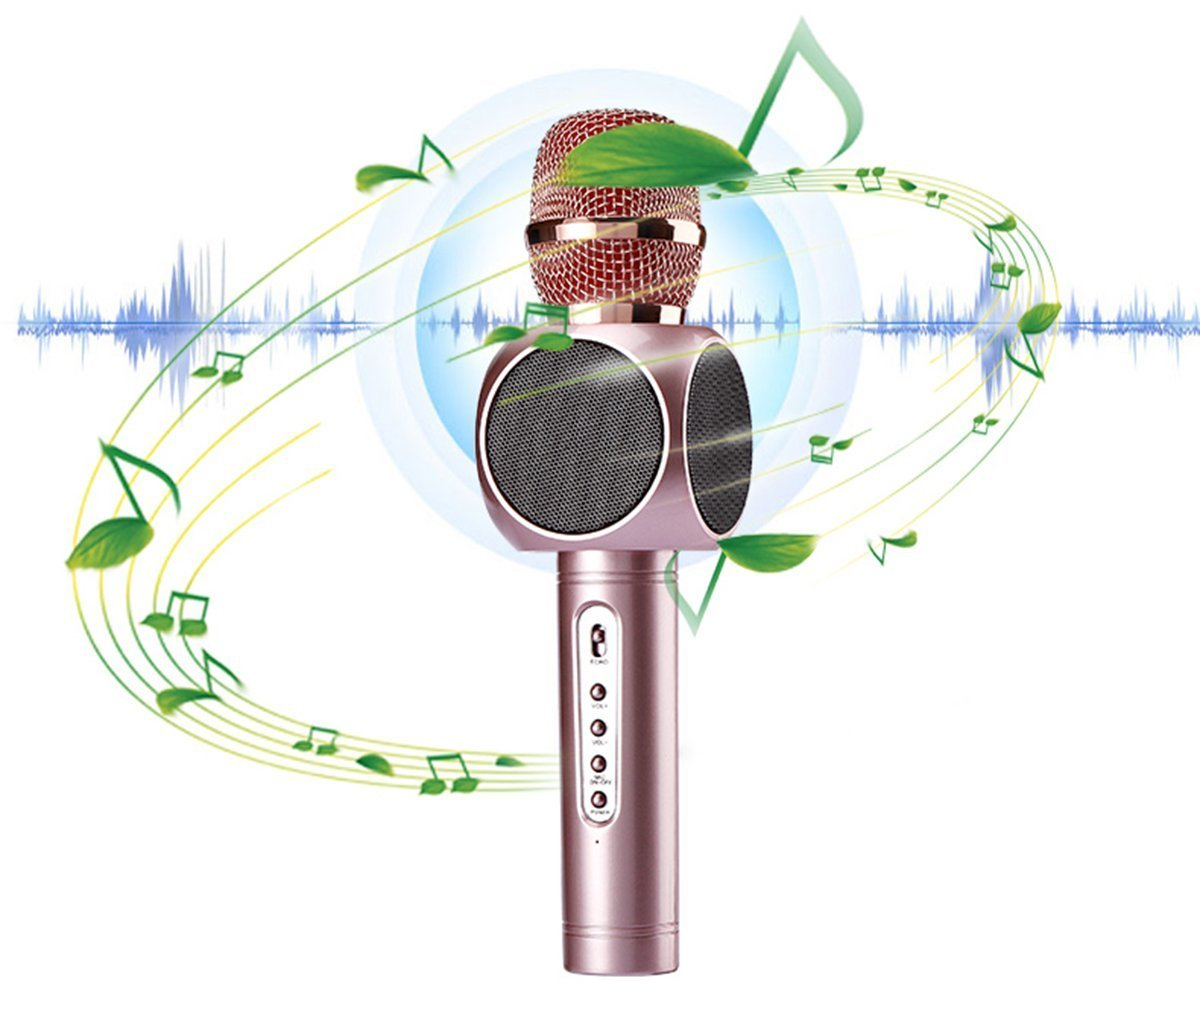 Acekool Wireless Karaoke Microphone & Speaker for Music Playing and Singing Anytime, 3 in 1 KTV Machine for Camping Activity ,Smule Sing,Youtube, IPhone Android Smartphone and PC (Golden)